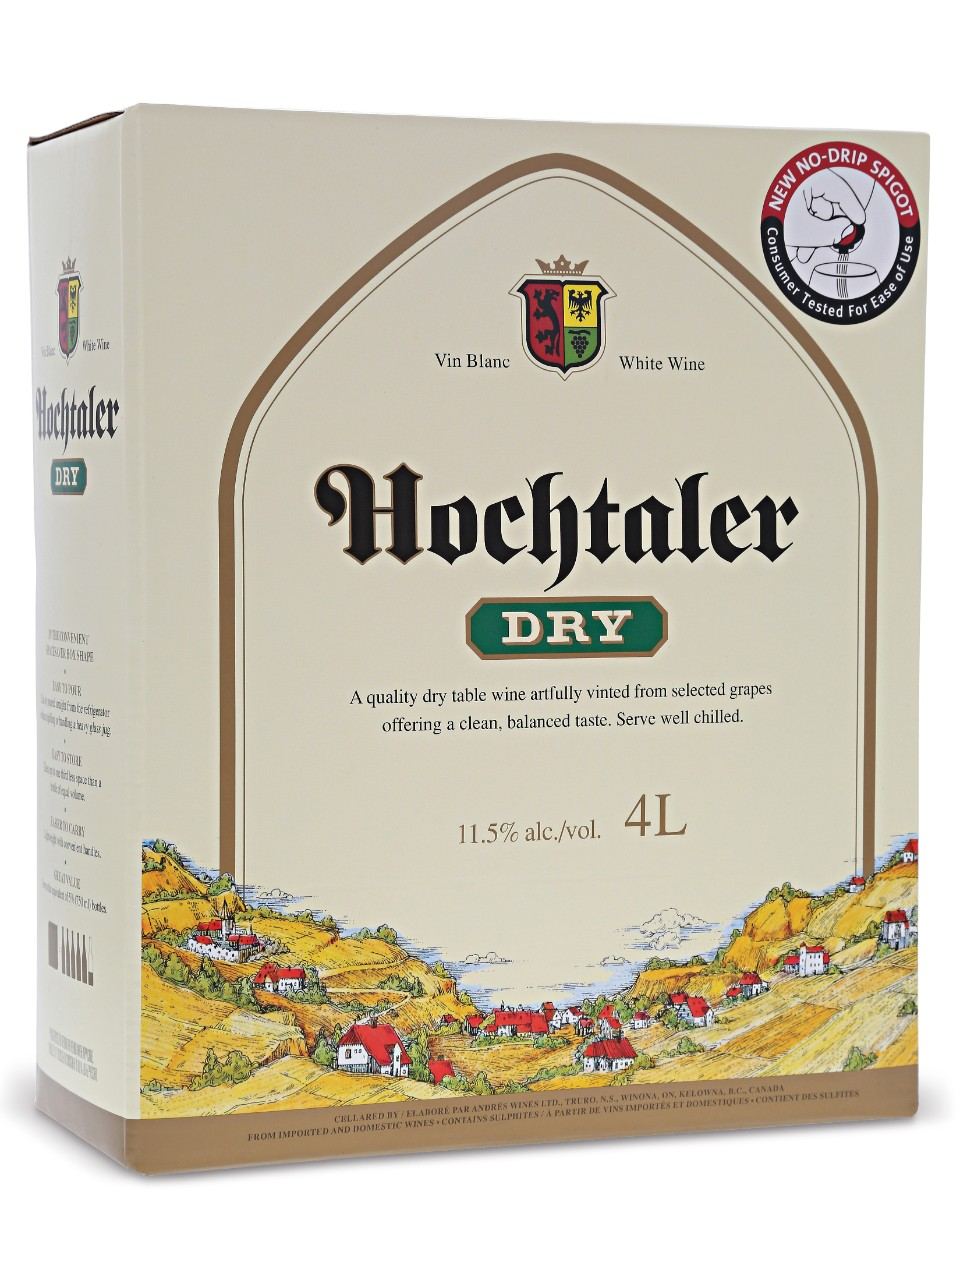 Hochtaler Dry                                                                                                                   -A